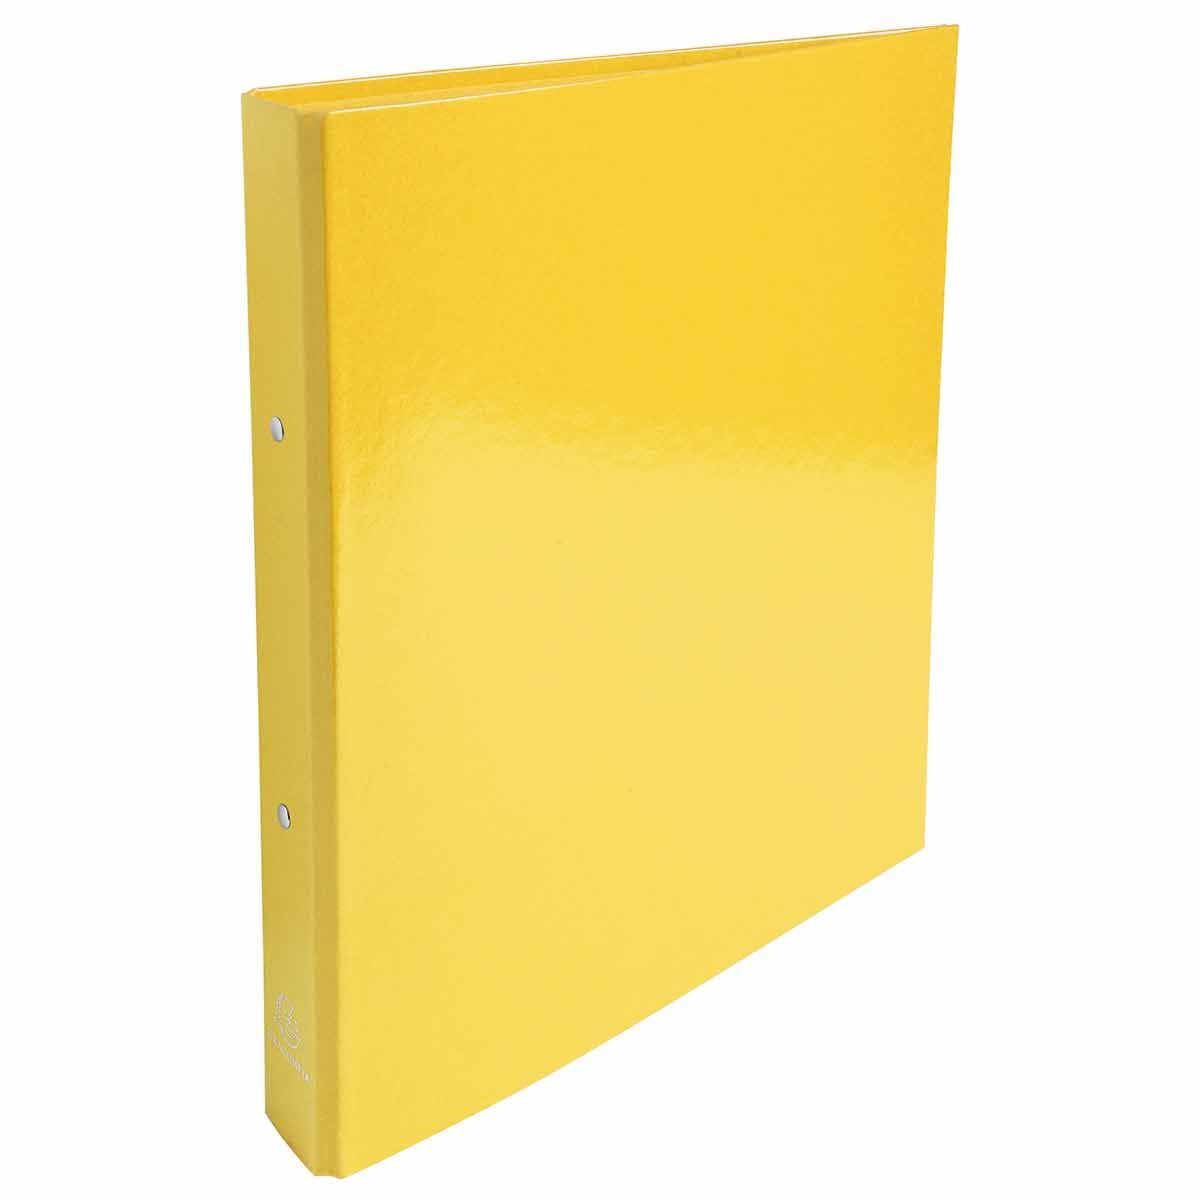 Exacompta Iderama Plastic Coated Ring Binder 2 Ring 30mm A4 Pack of 10 Yellow